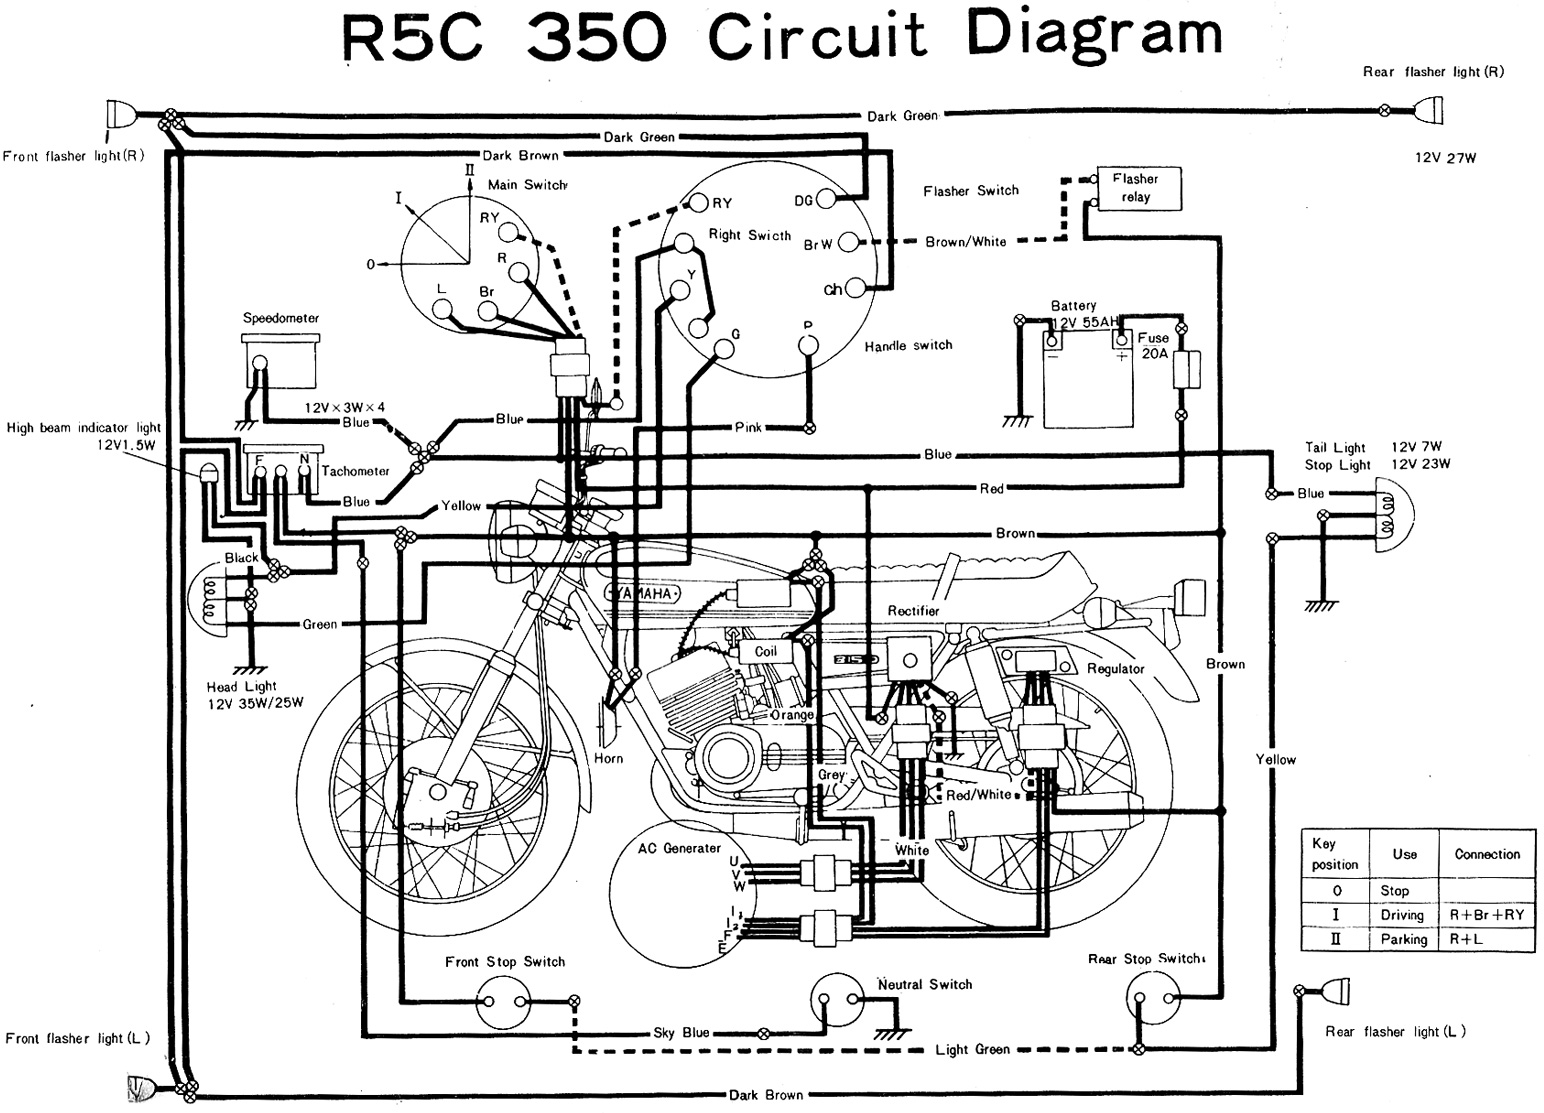 Yamaha RD350 R5C Wiring Diagram motorcycle wiring diagrams evan fell motorcycle worksevan fell Basic Motorcycle Diagram at metegol.co